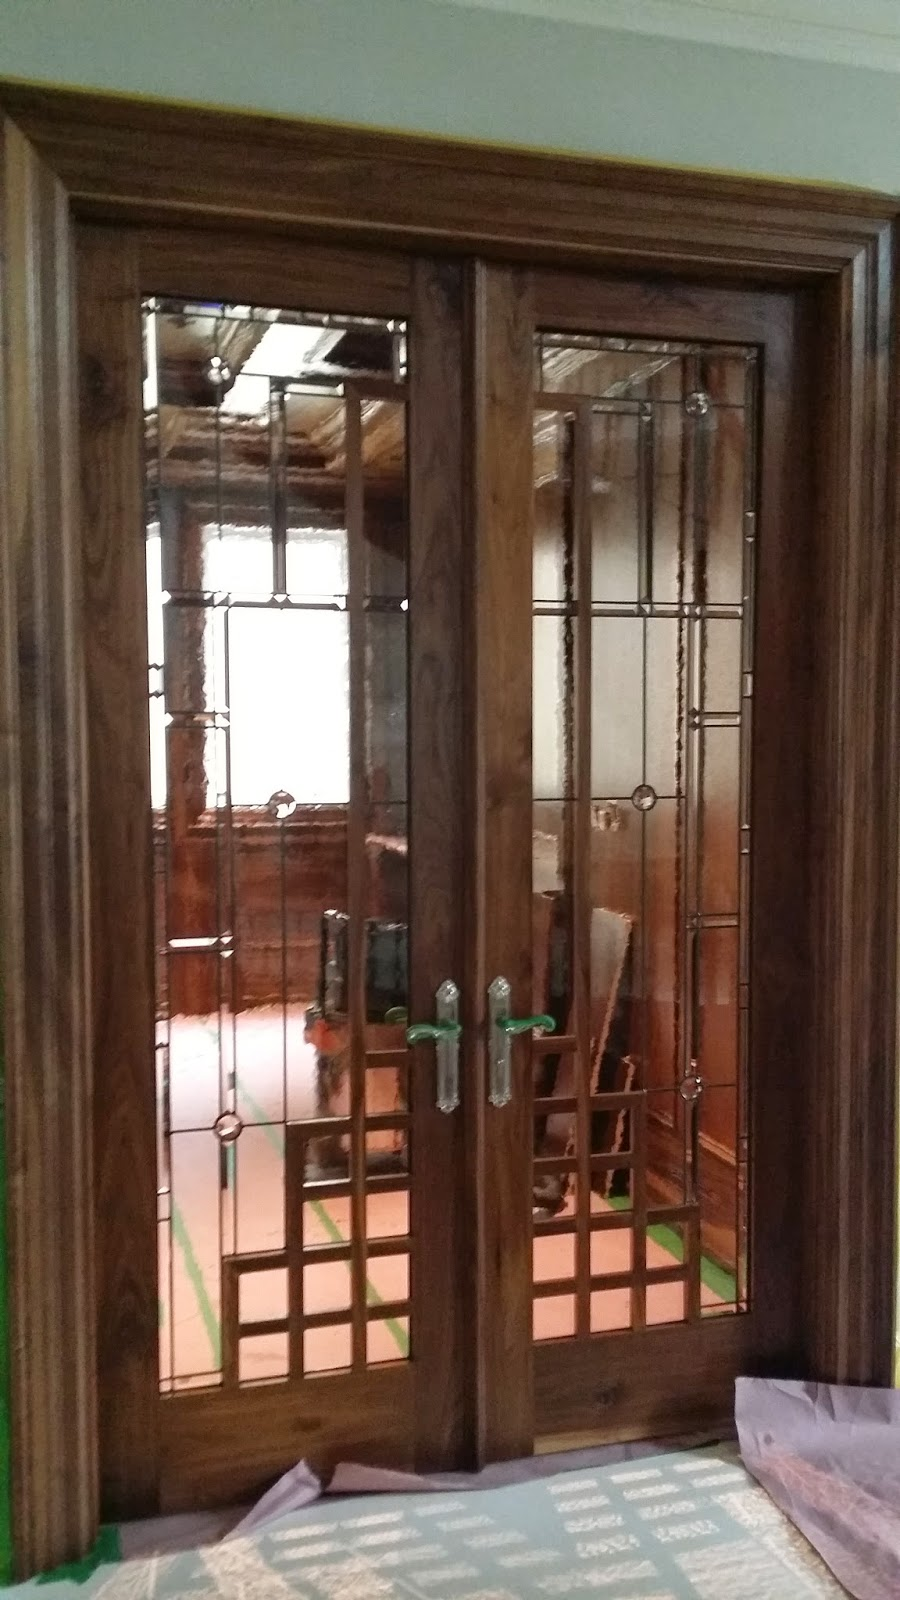 Interior Doors With Glass Inserts : Glassworks studio leaded glass interior door inserts with